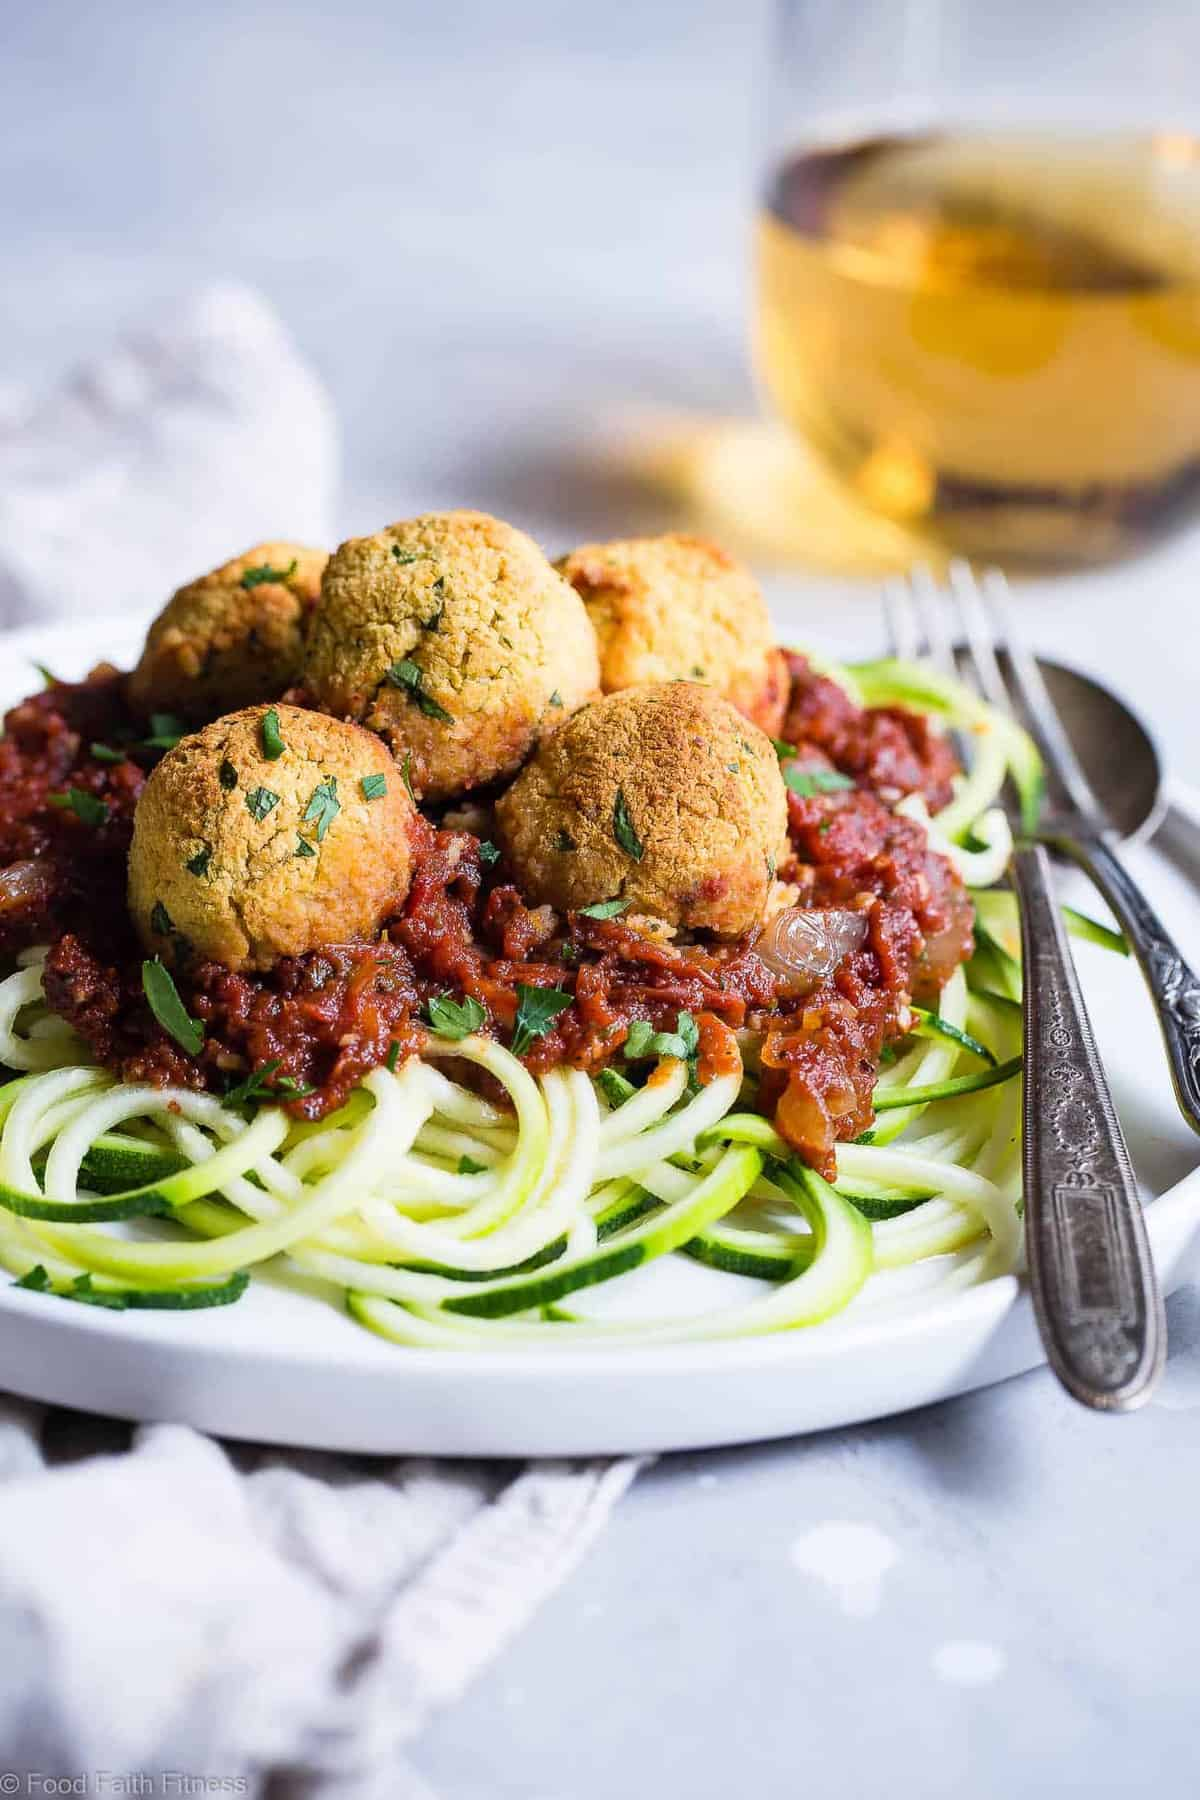 Gluten Free Vegan Chickpea Vegetarian Meatballs Recipe with Tomato Sauce - These meatless, gluten free meatballs are SO crispy, they will blow your mind! Serve them with an easy tomato sauce for a tasty, healthy dinner that's packed with plant protein and fiber! | #Foodfaithfitness | #Vegan #Glutenfree #Healthy #Vegetarian #Dairyfree